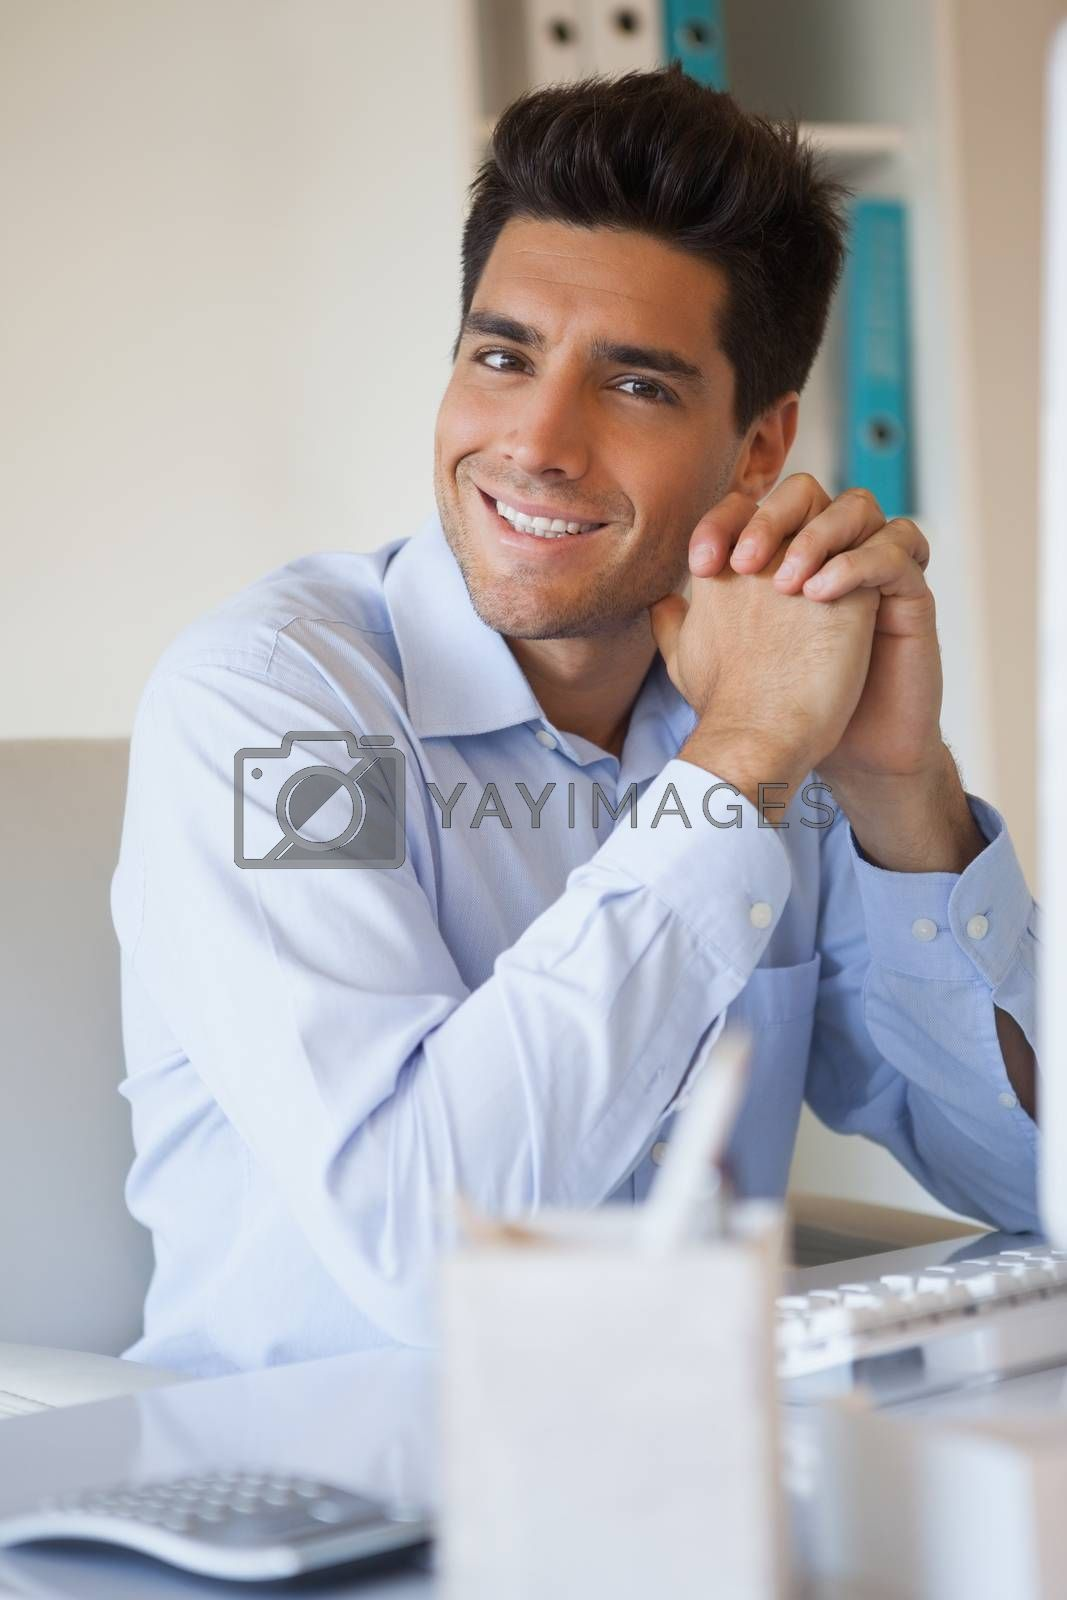 Royalty free image of Casual businessman smiling at camera at his desk by Wavebreakmedia